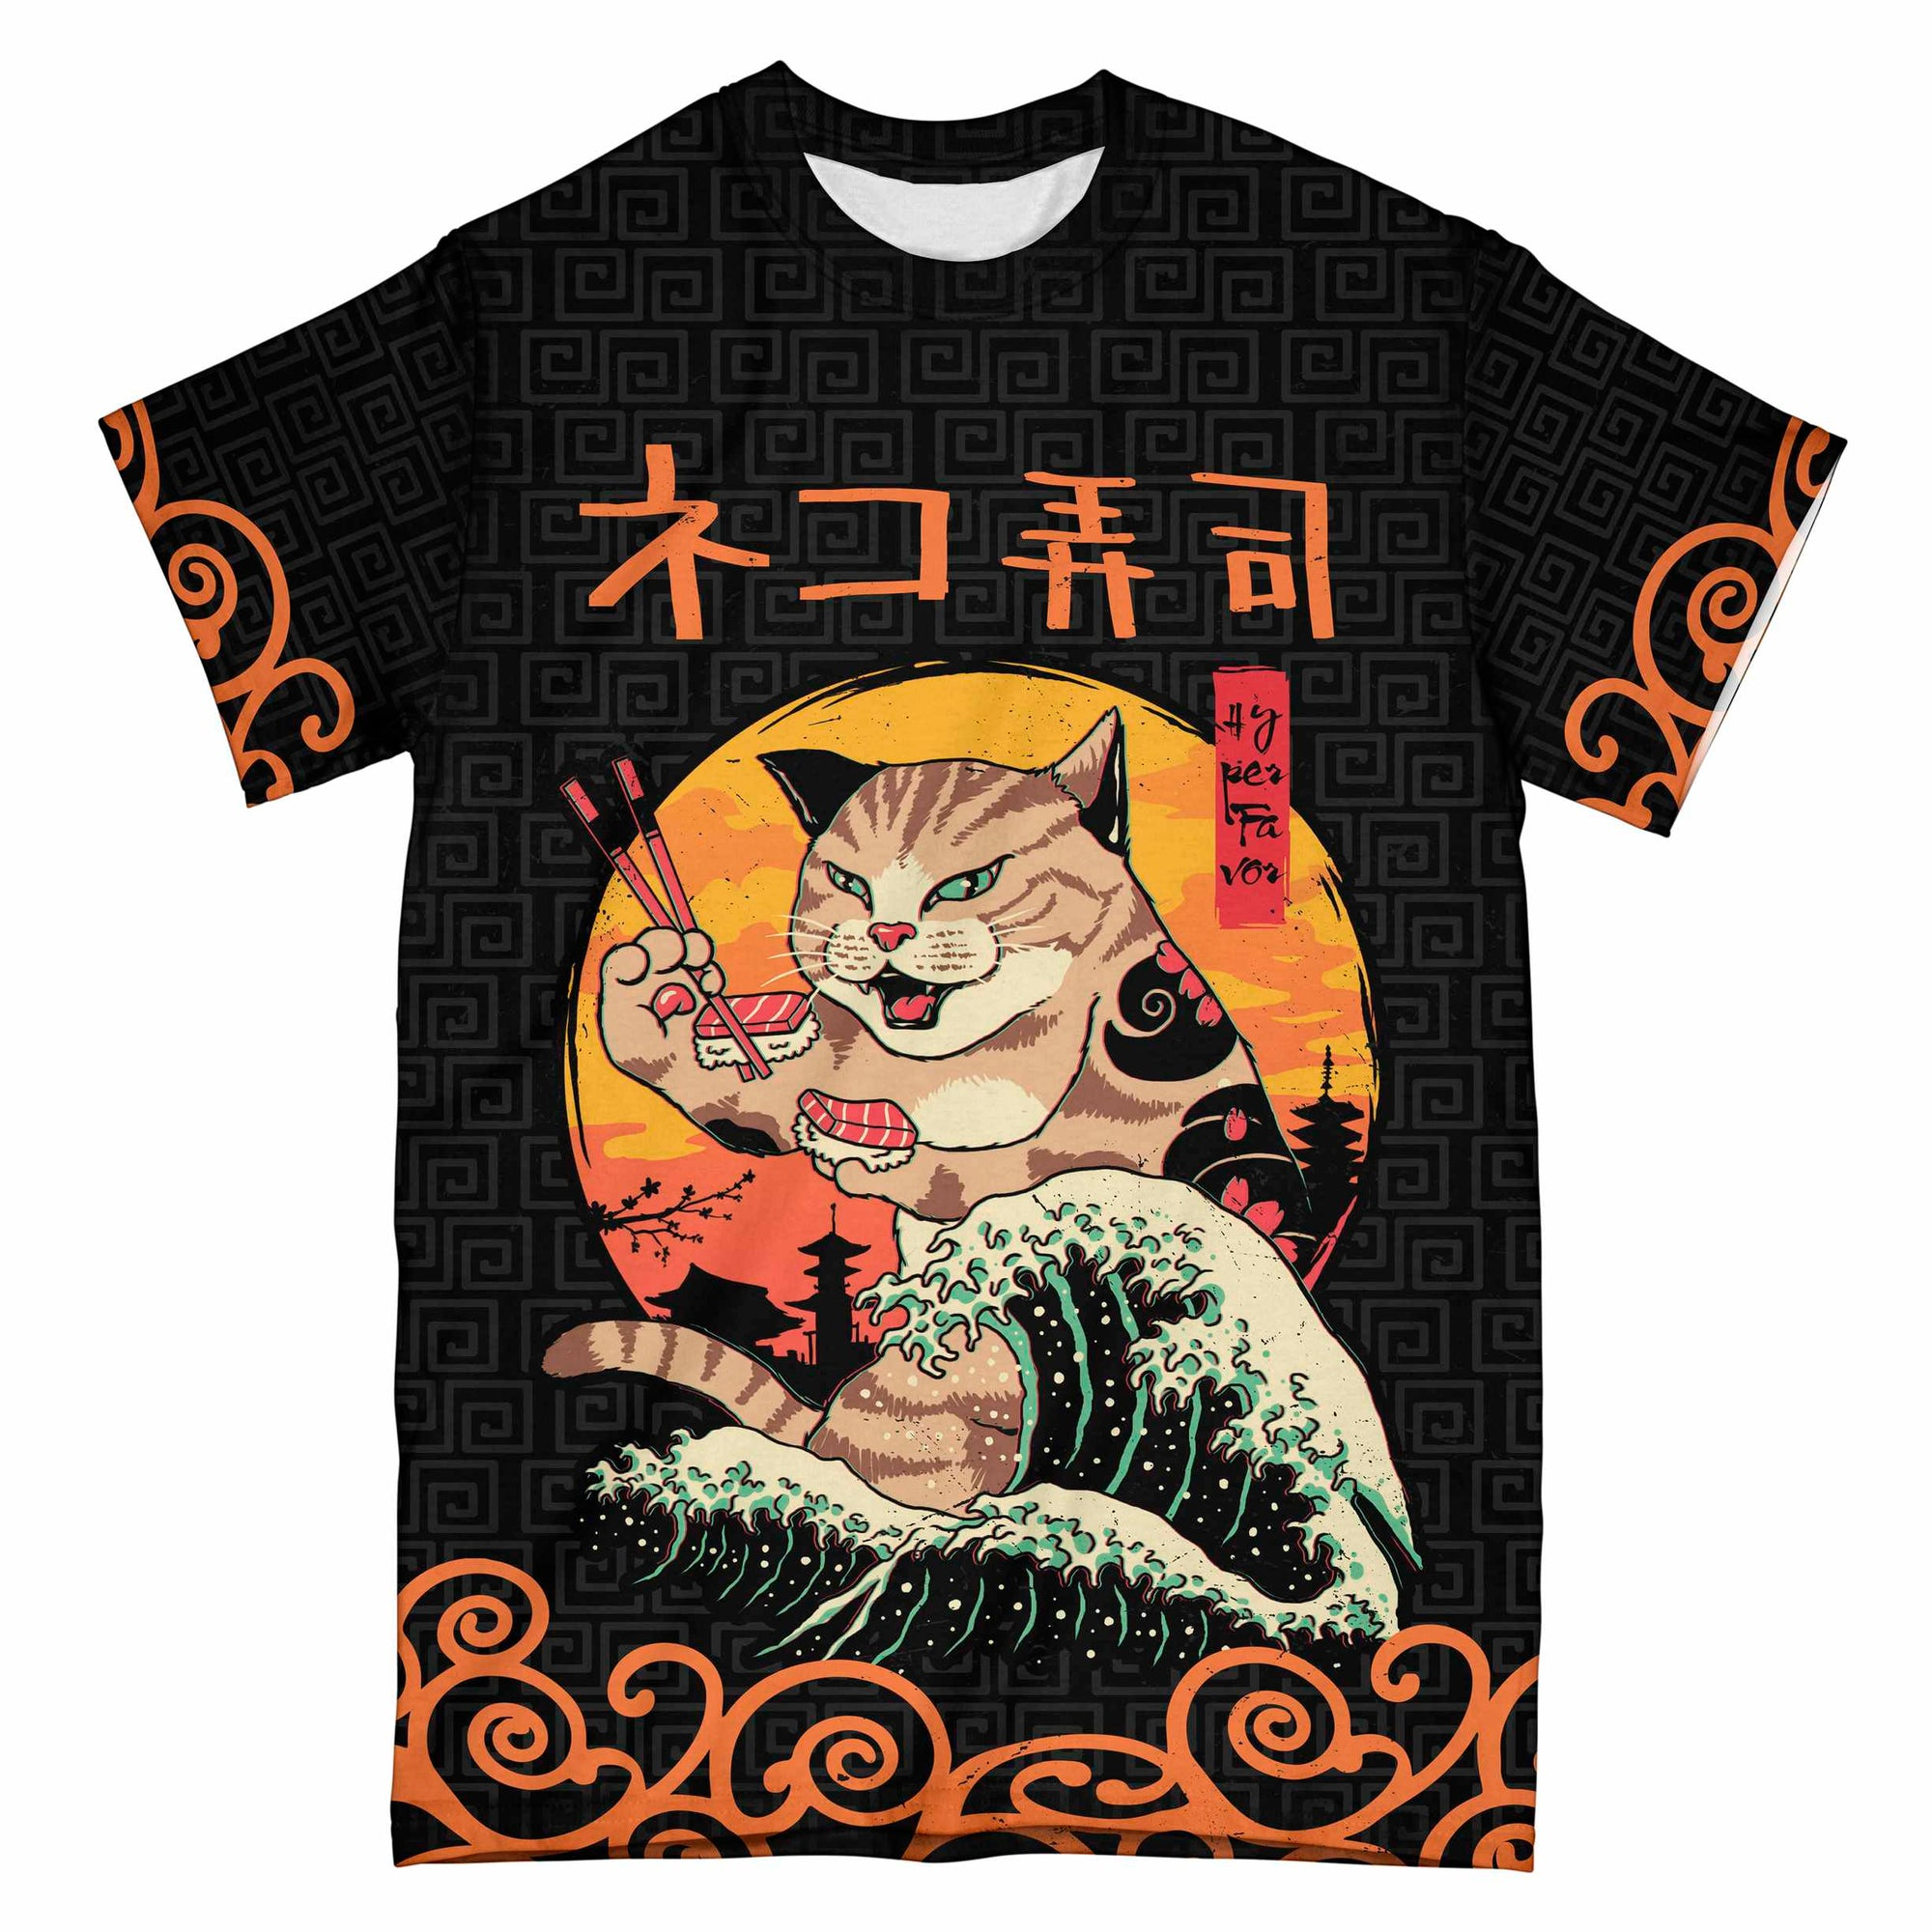 Neko Sushi Japanese Retro EZ07 2305 All Over T-shirt - Hyperfavor